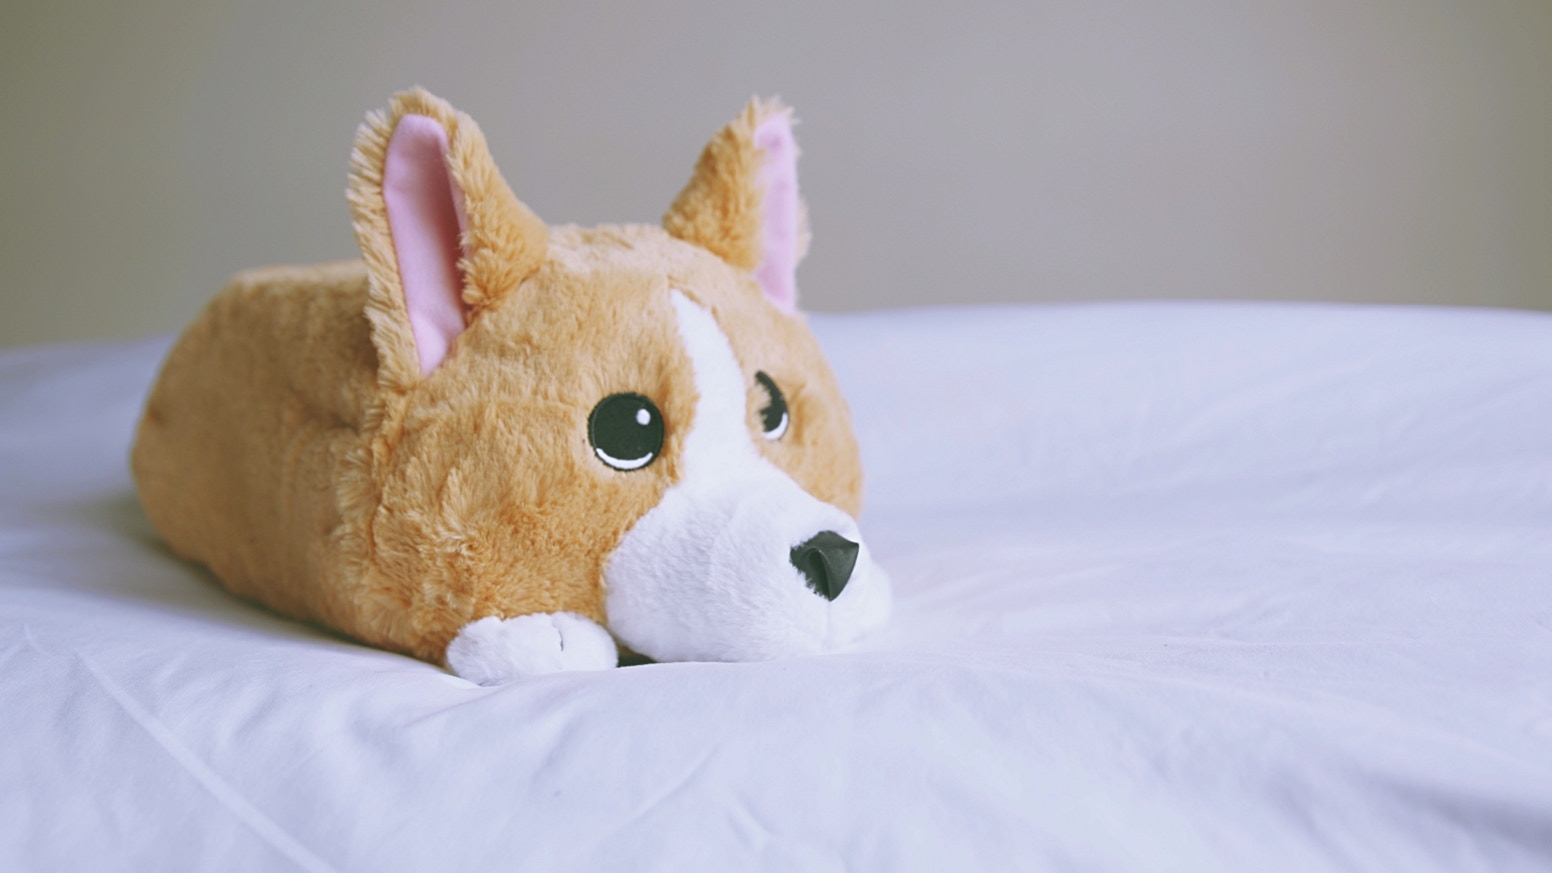 Waffles is the most adorable Corgi plush and is stuffed with Memory Foam. Take him on your next trip or cuddle with him at home.